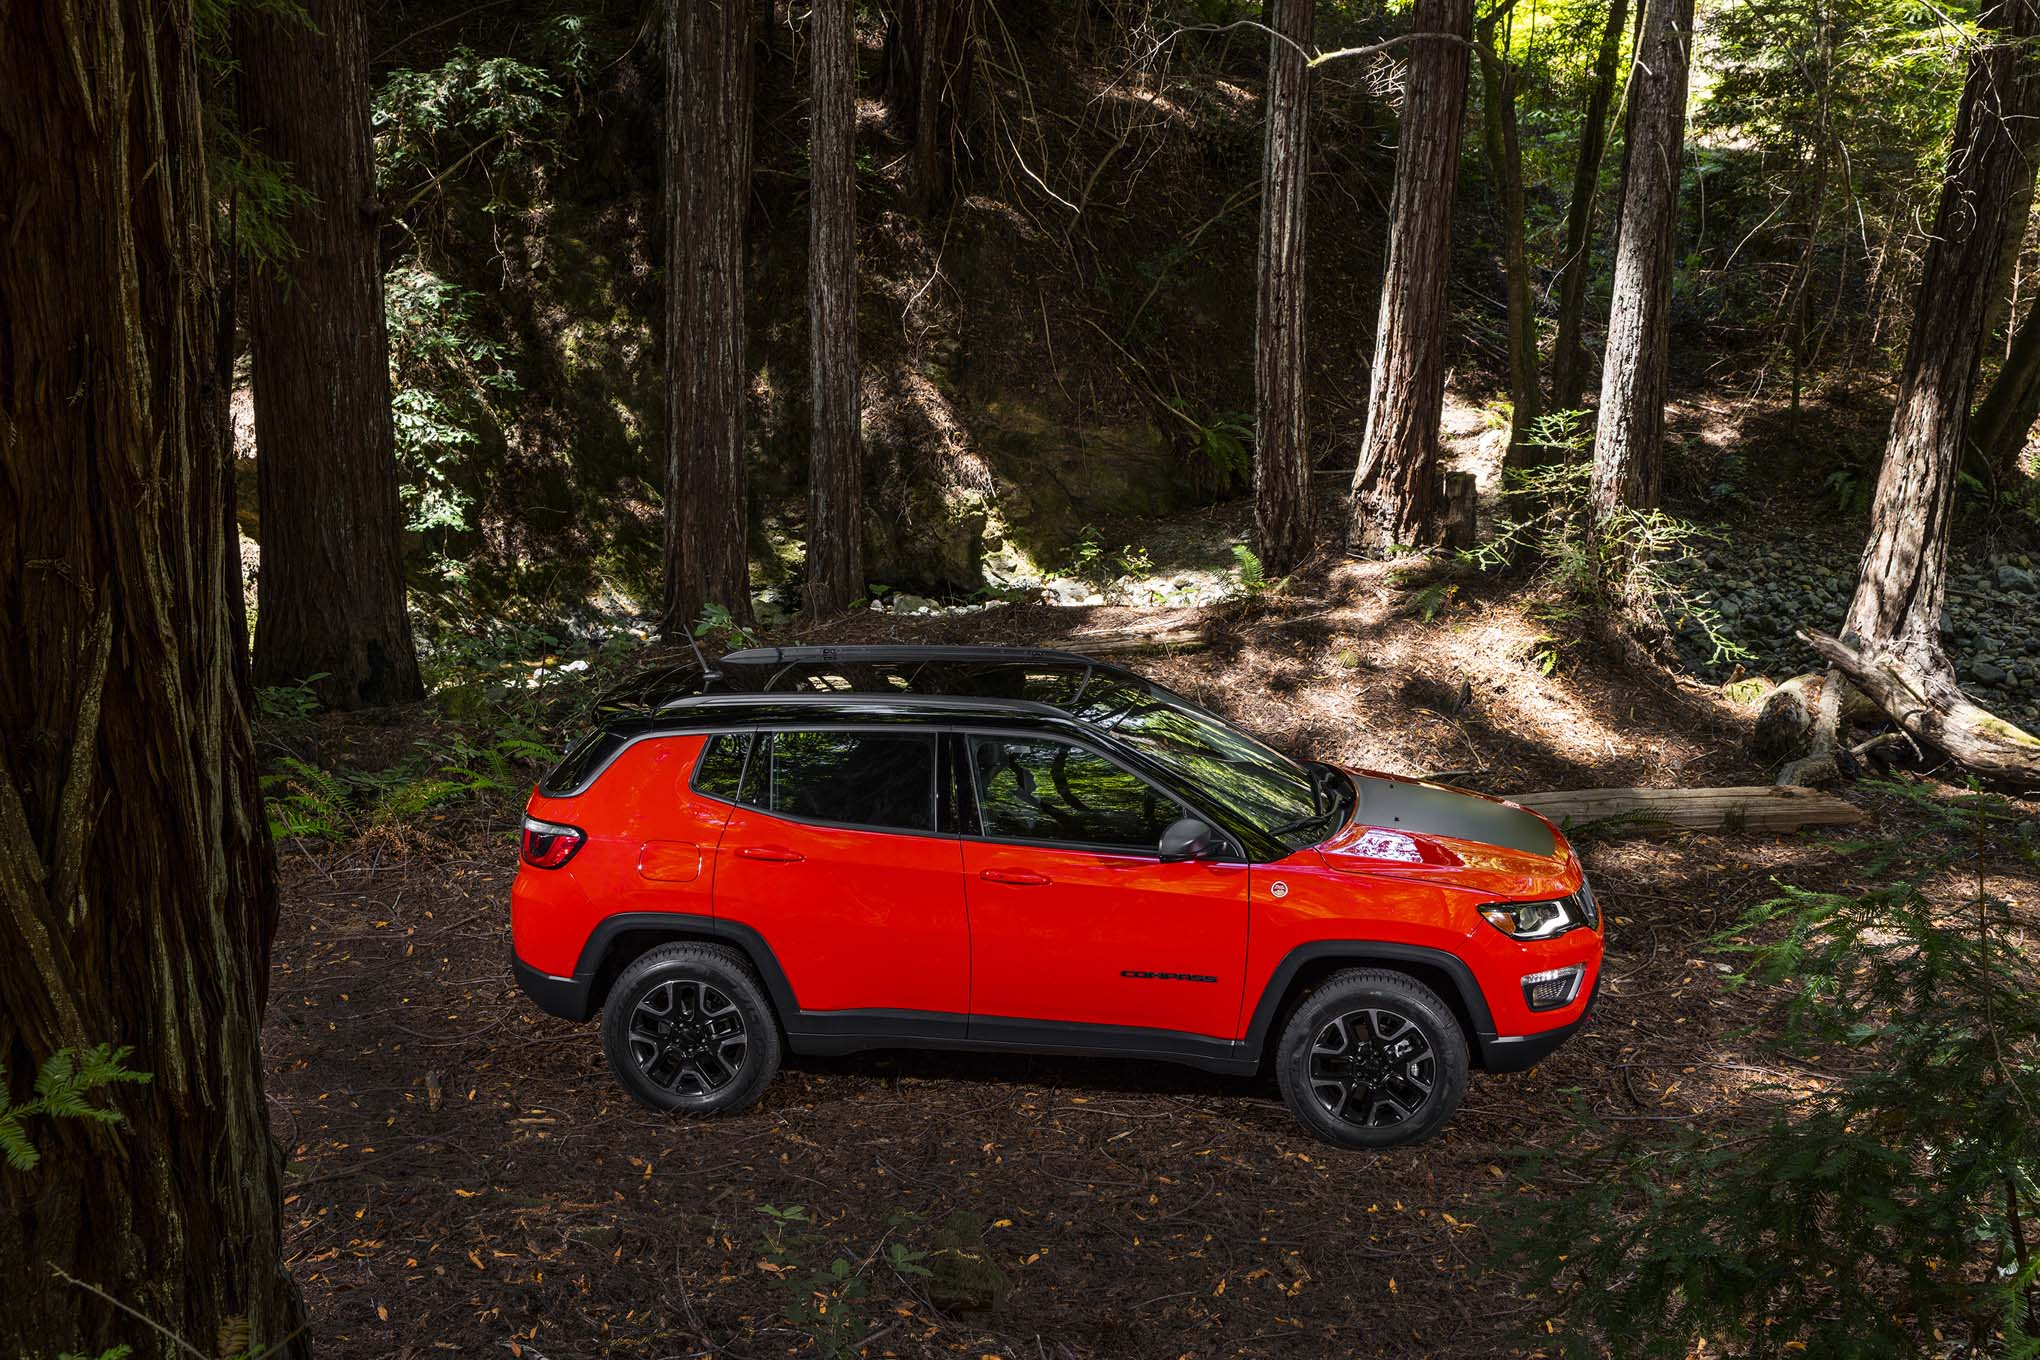 Jeep Compass Wallpapers Vehicles Hq Jeep Compass Pictures 4k Wallpapers 2019